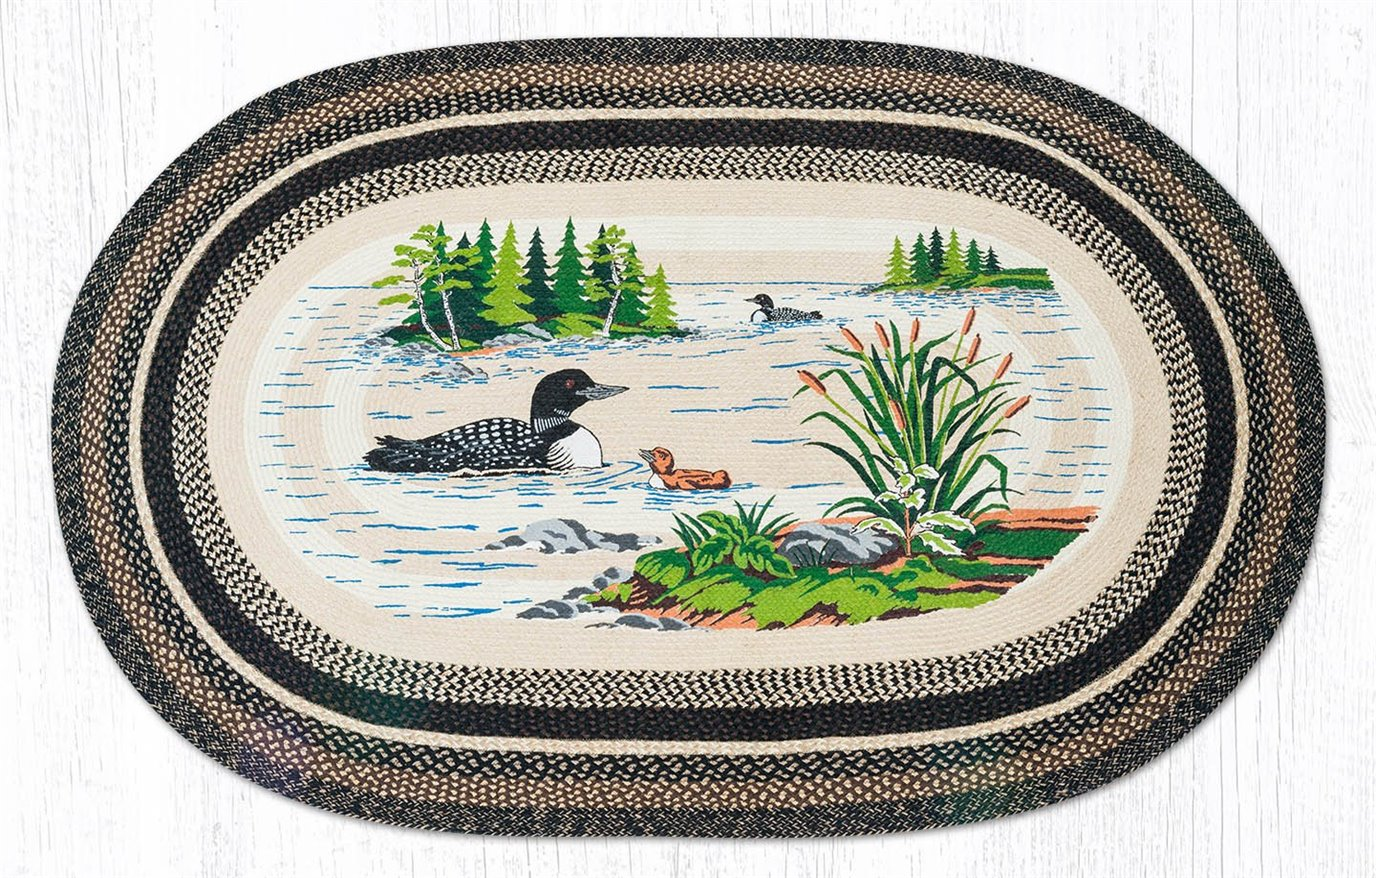 Loons Oval Braided Rug 5'x8'